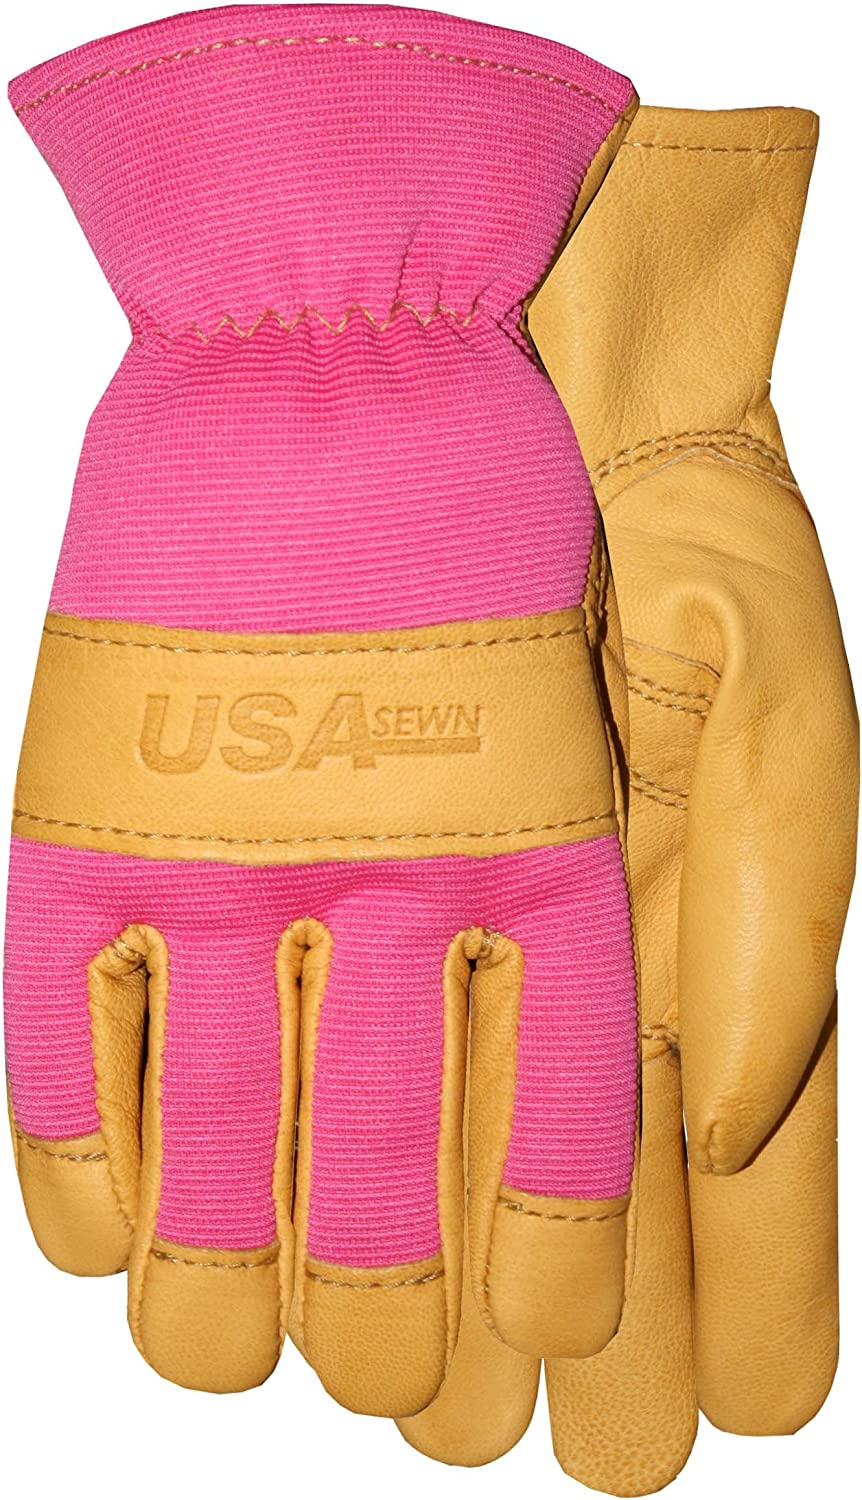 American Made Goatskin Leather Work or Garden Gloves with Leather Palm and Pink Spandex, 157P2, Size: 8